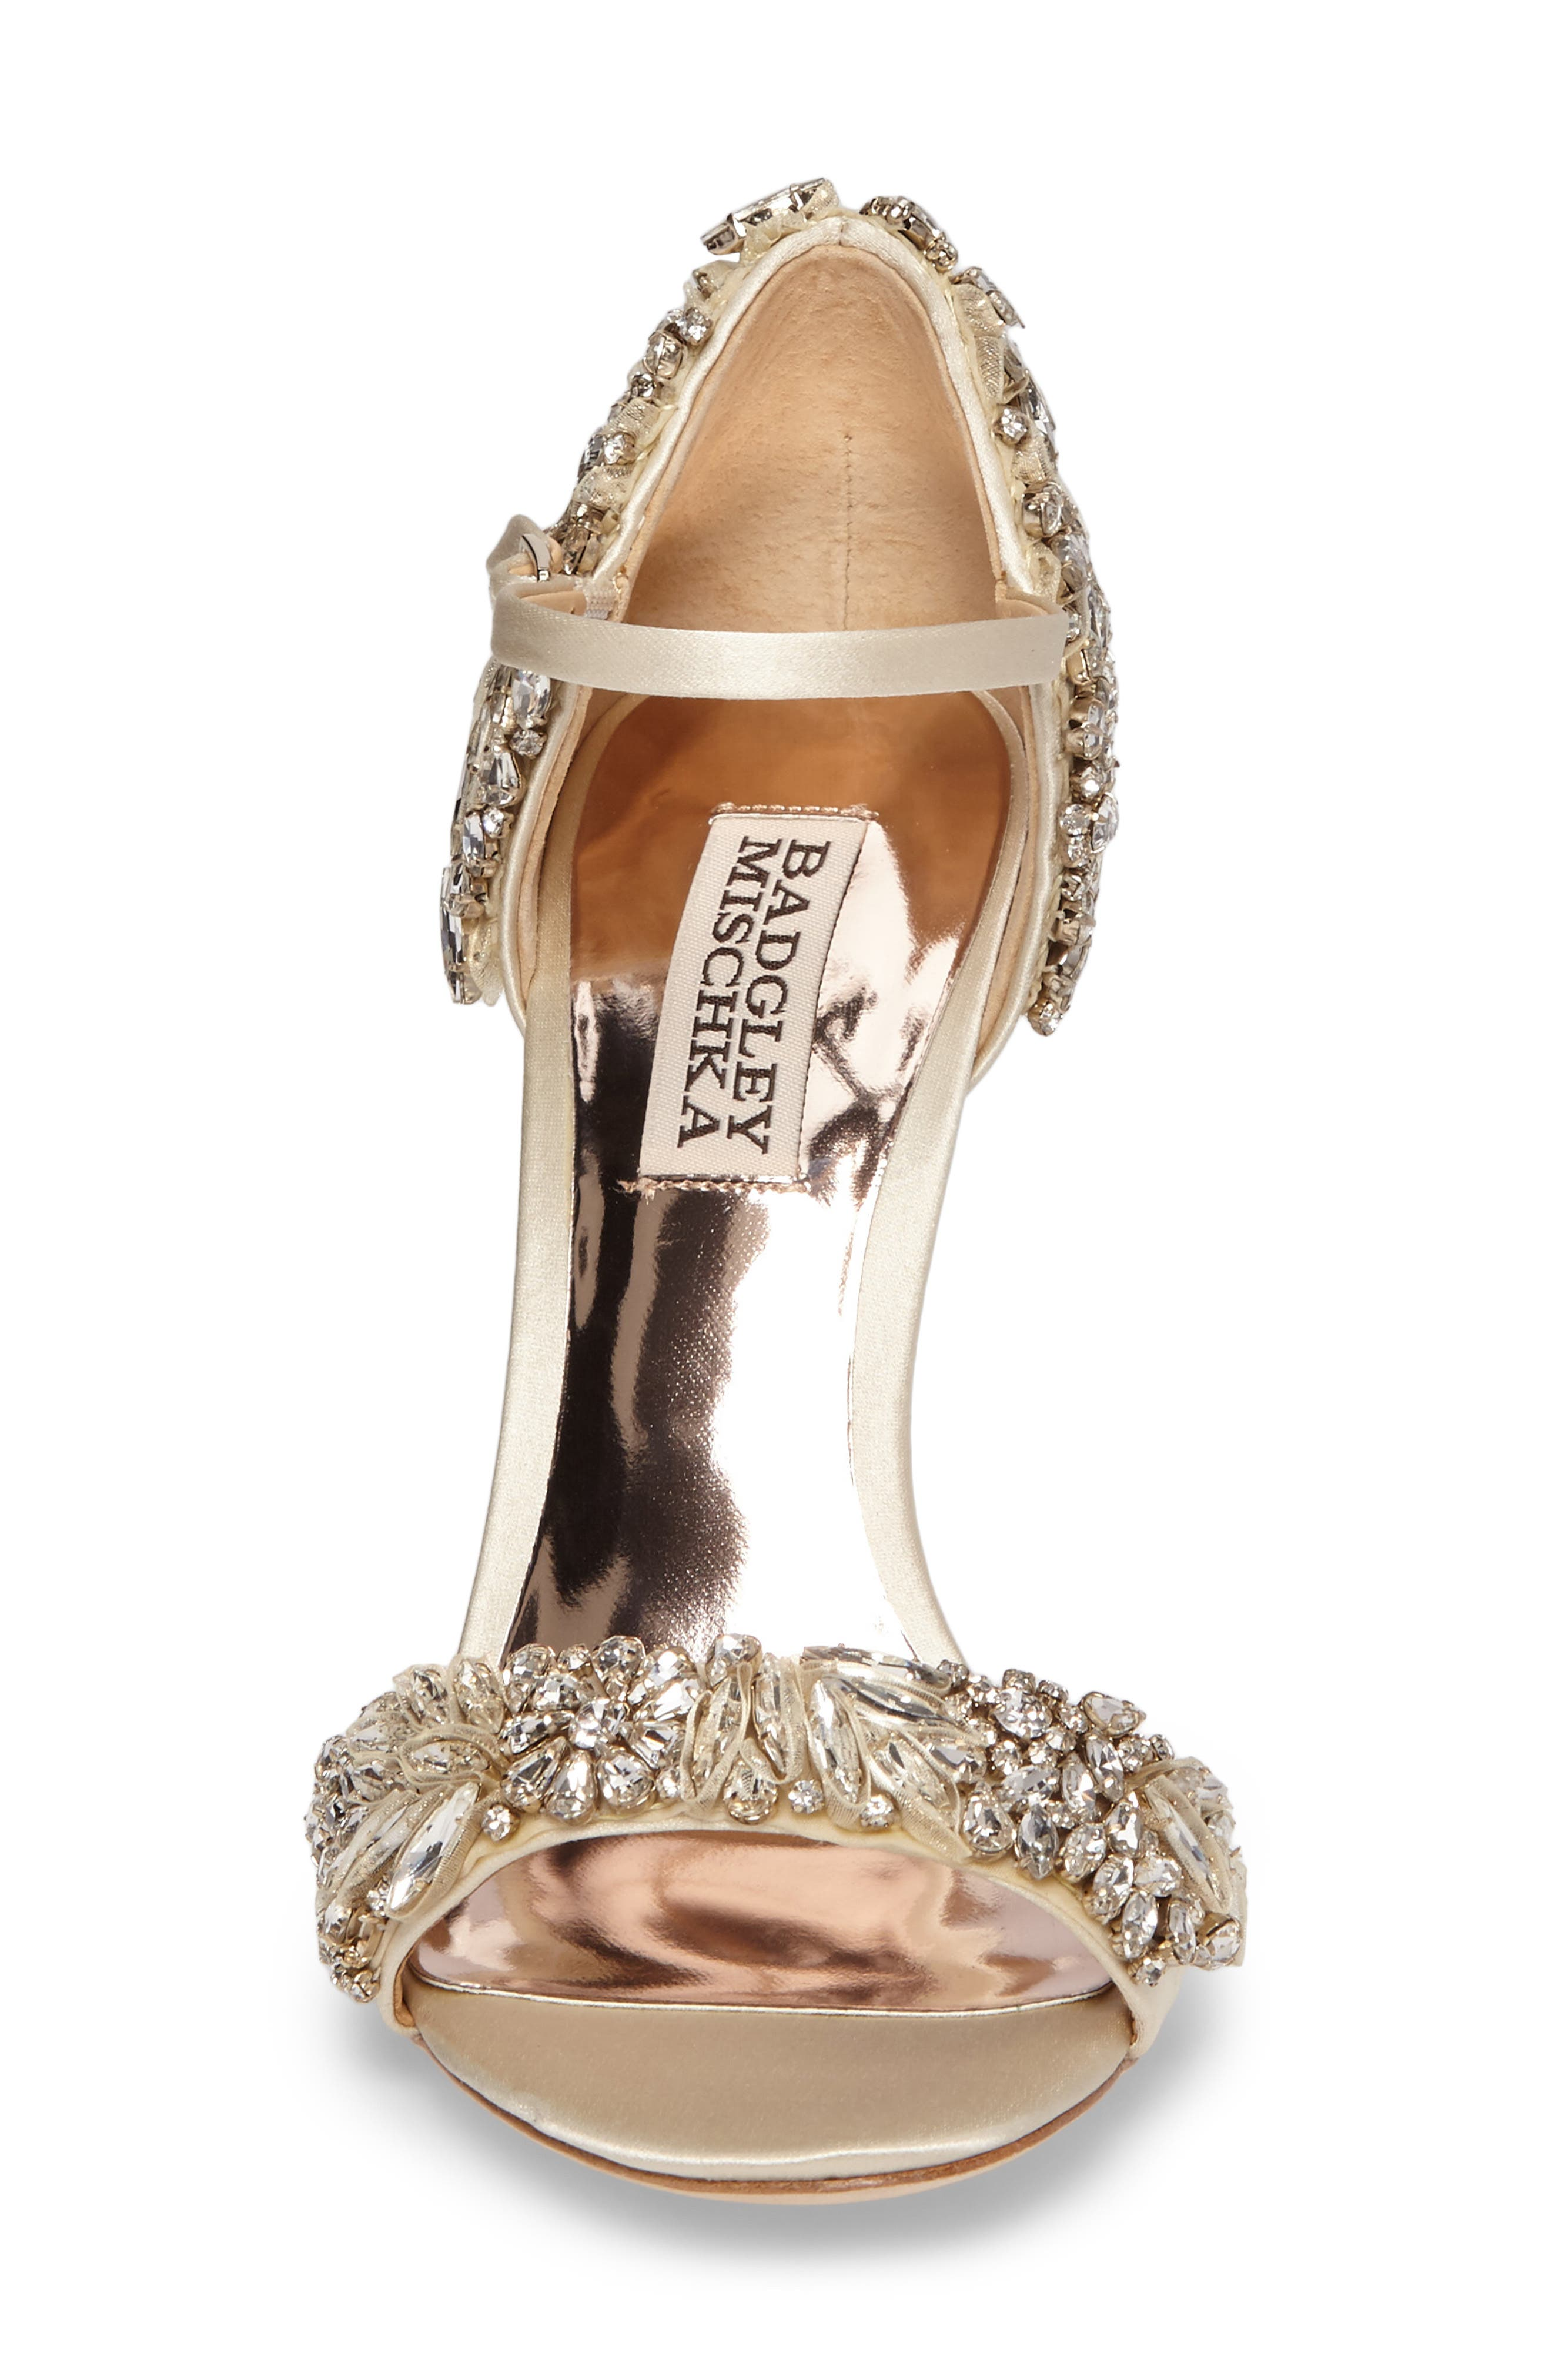 BADGLEY MISCHKA COLLECTION, Badgley Mischka Tampa Ankle Strap Sandal, Alternate thumbnail 4, color, IVORY SATIN